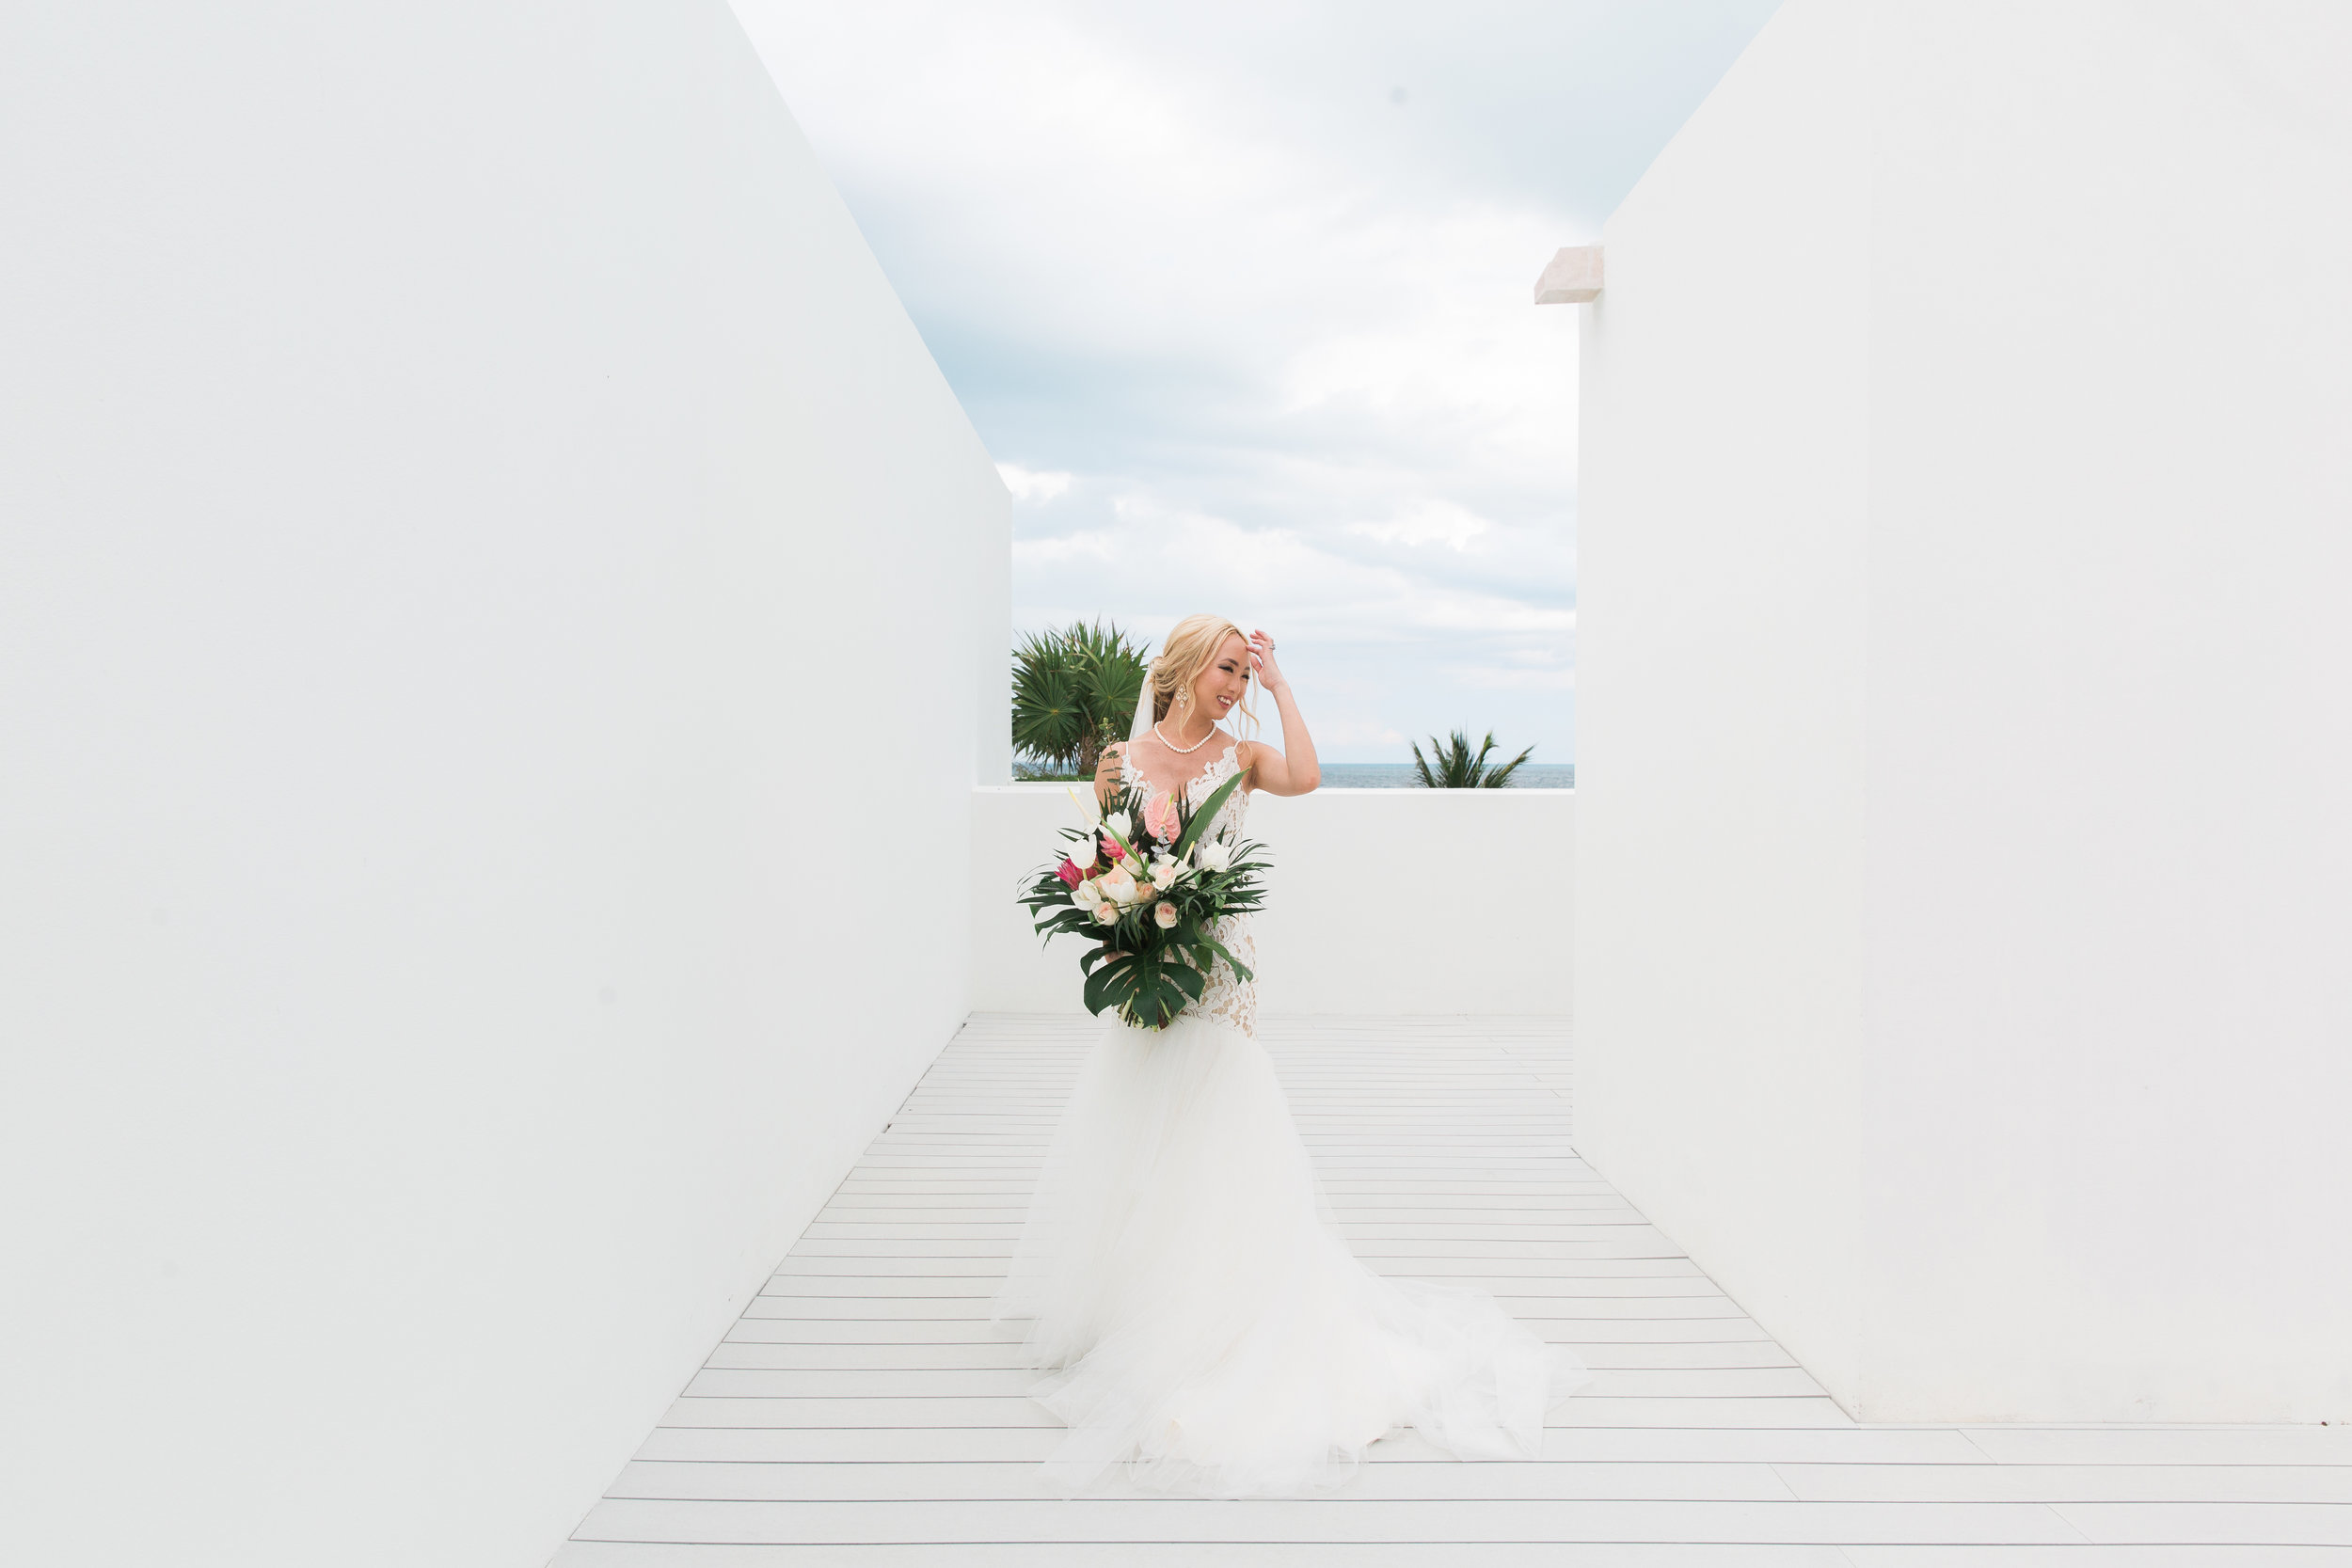 Mexico Wedding Photographer- Krista Turner Photography - Finest Playa Mujeres Wedding Photographer (237 of 1201).JPG